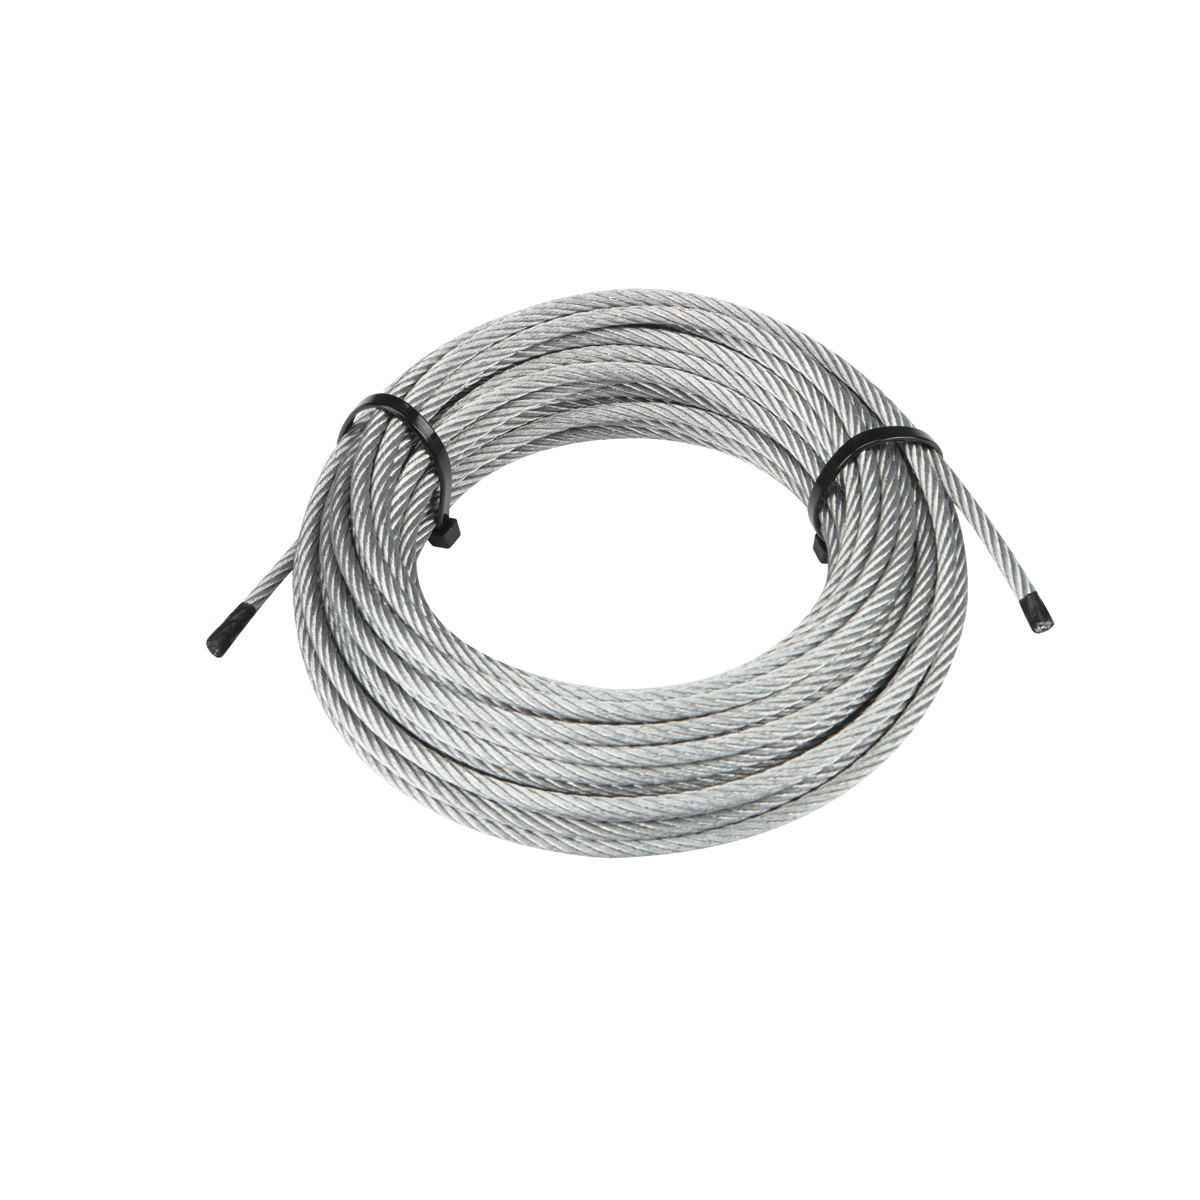 50 ft. x 3/16 in. Aircraft Grade Wire Rope